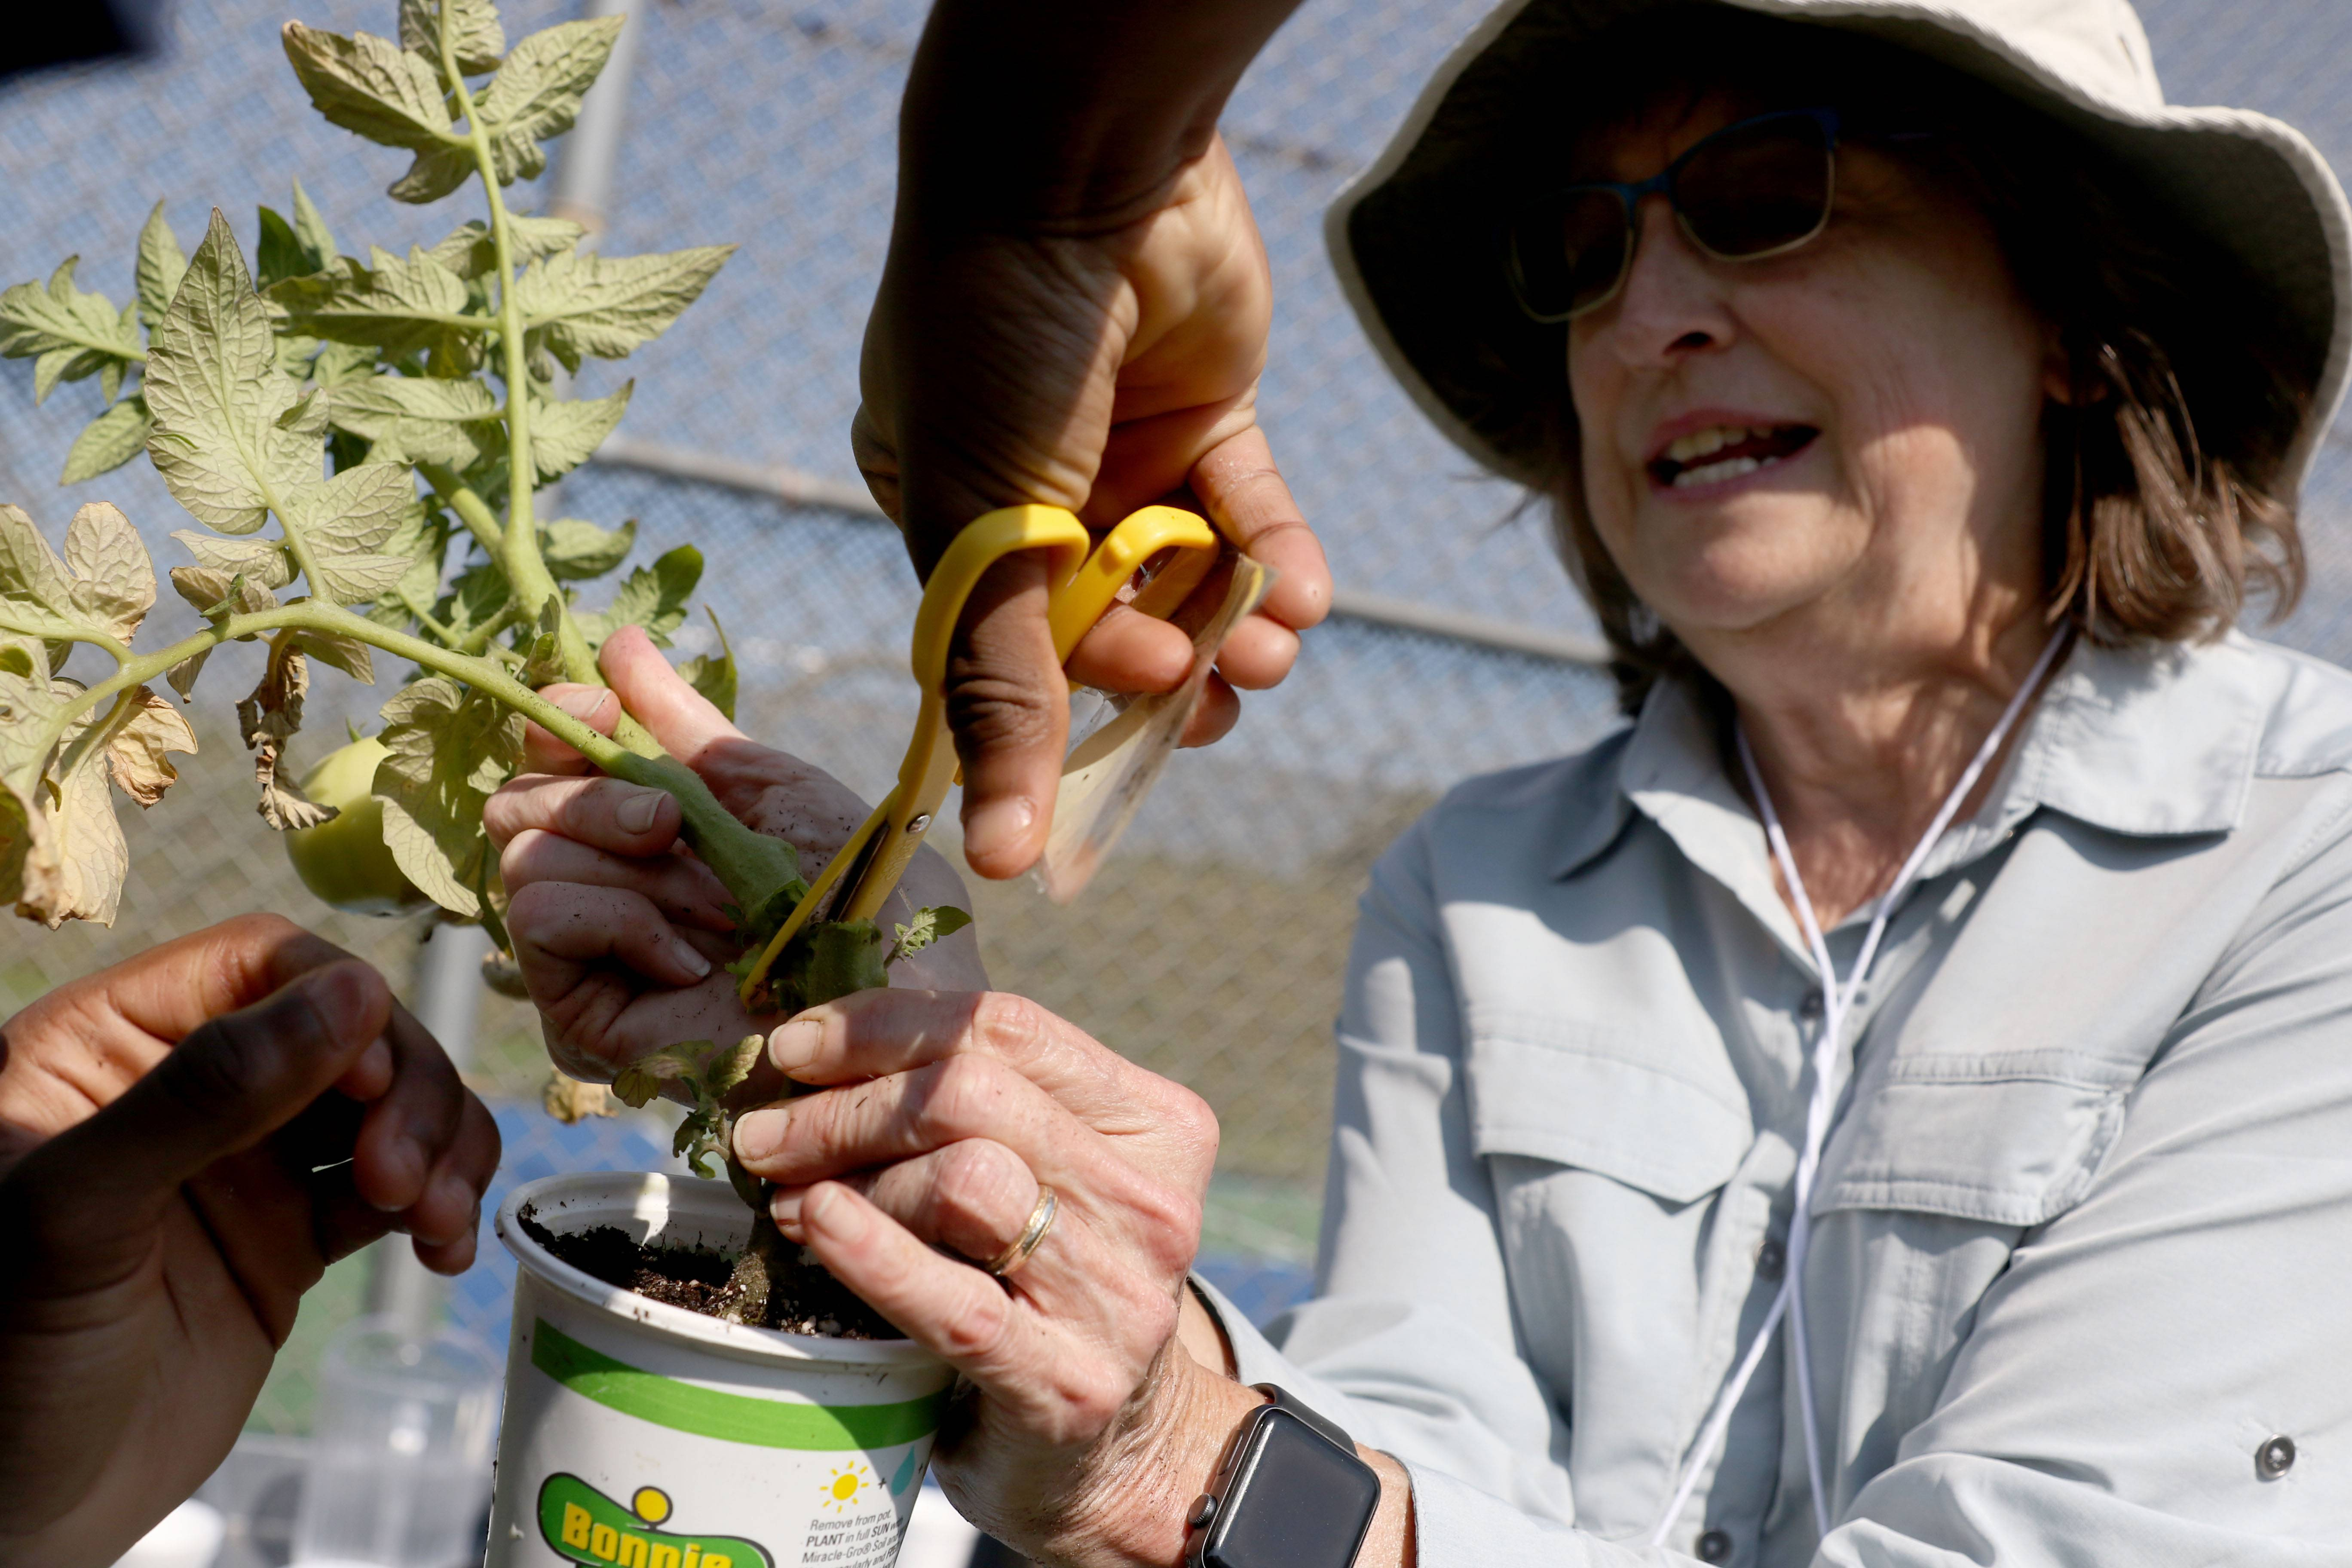 Volunteer Master Gardener Donna Plonczynski helps a Kane County Juvenile Justice Center detainee trim a tomato plant so other plants can be propagated from it.